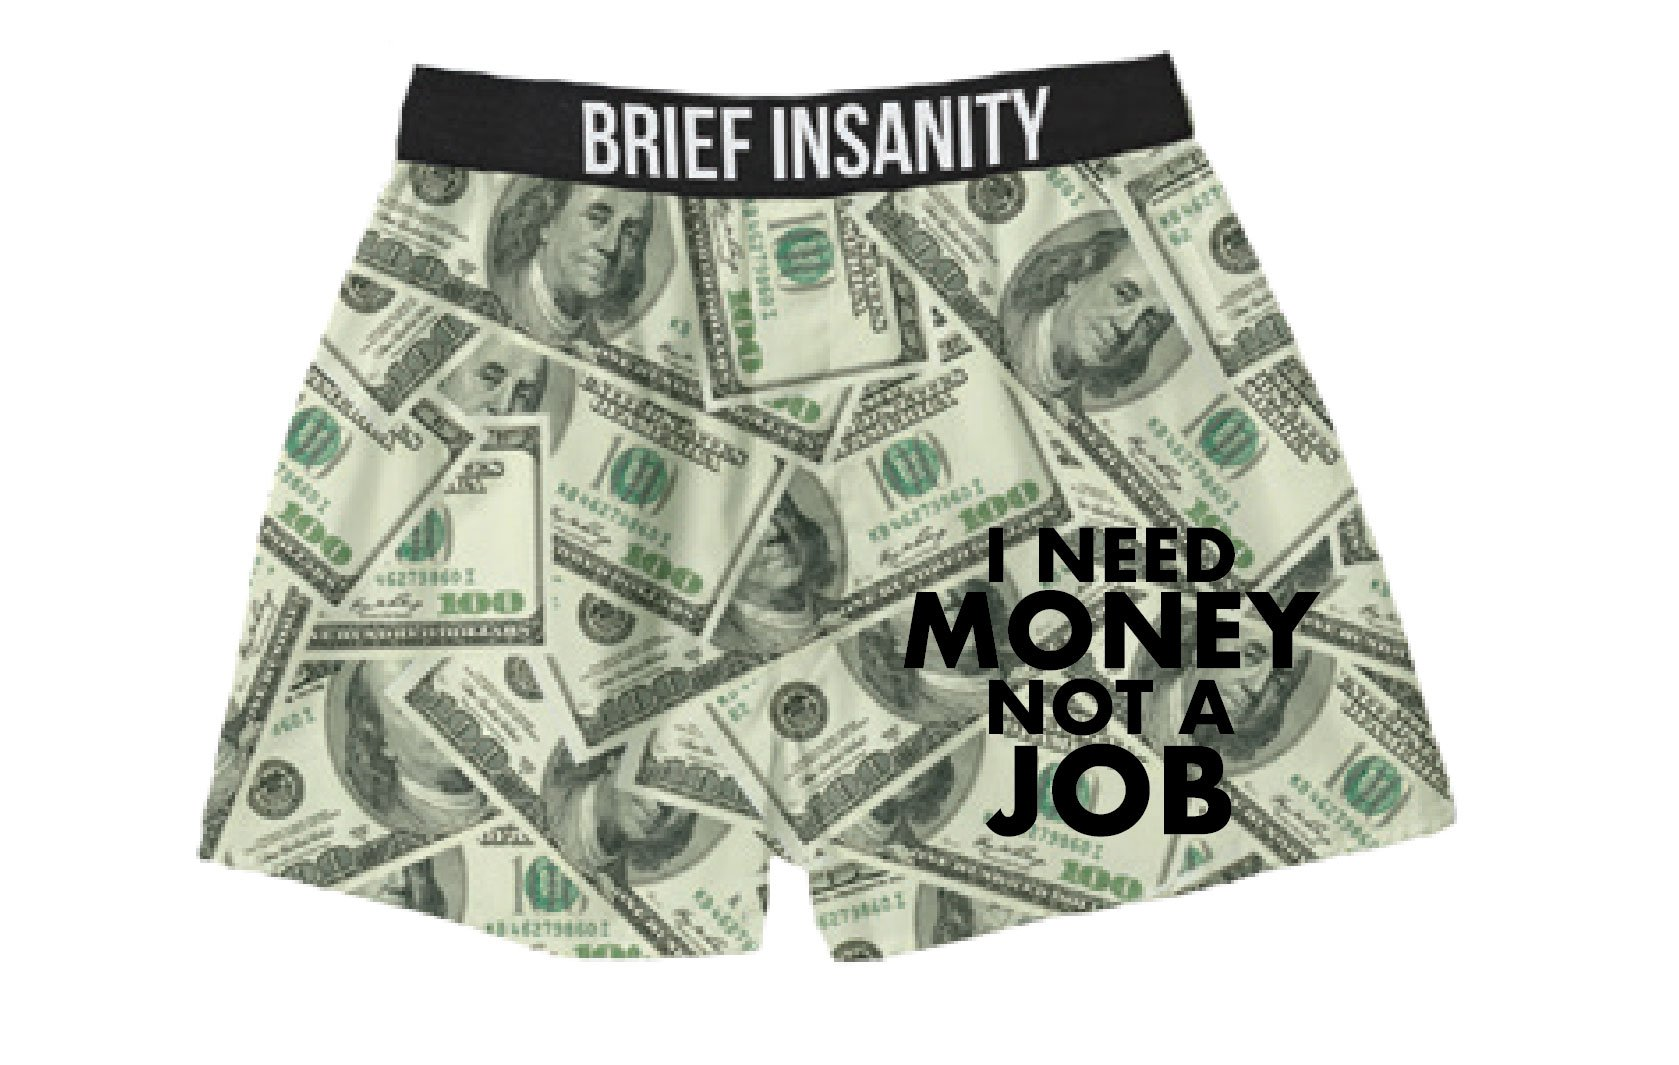 I Don't Need a Job, I Need Money Silky Funny Boxer Shorts Gifts for Men